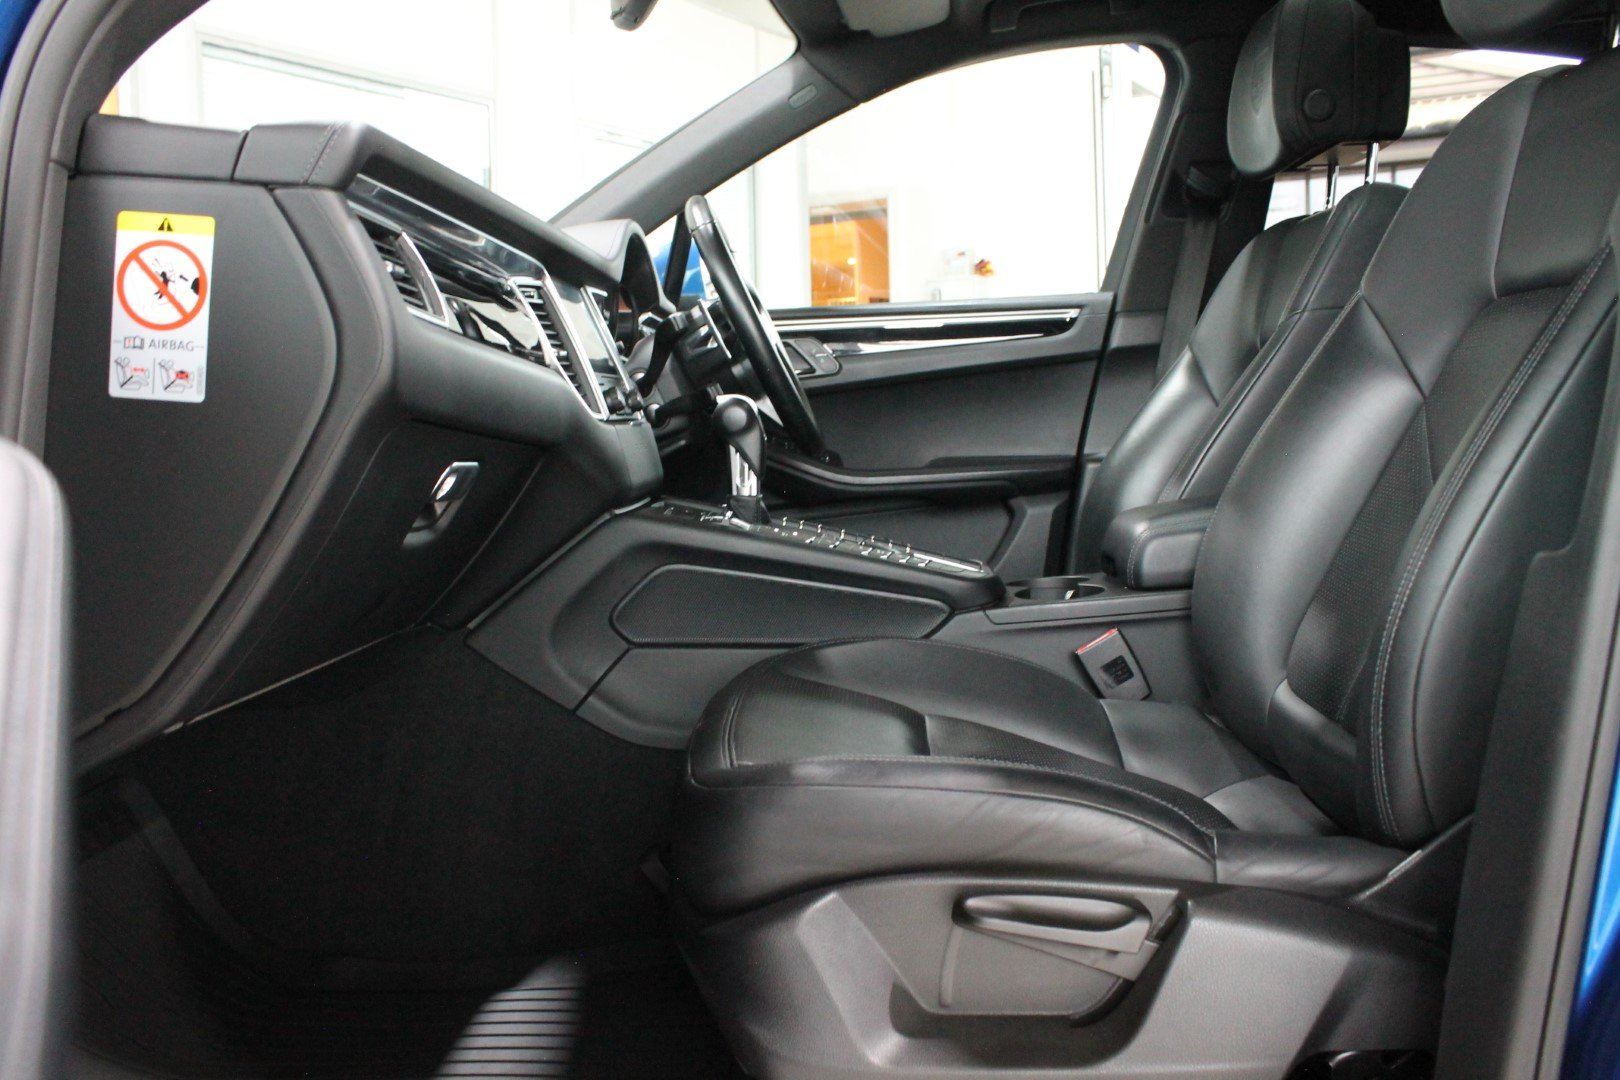 2016 Porsche Macan 3.0 S - NOW SOLD - MORE REQUIRED For Sale (picture 11 of 12)